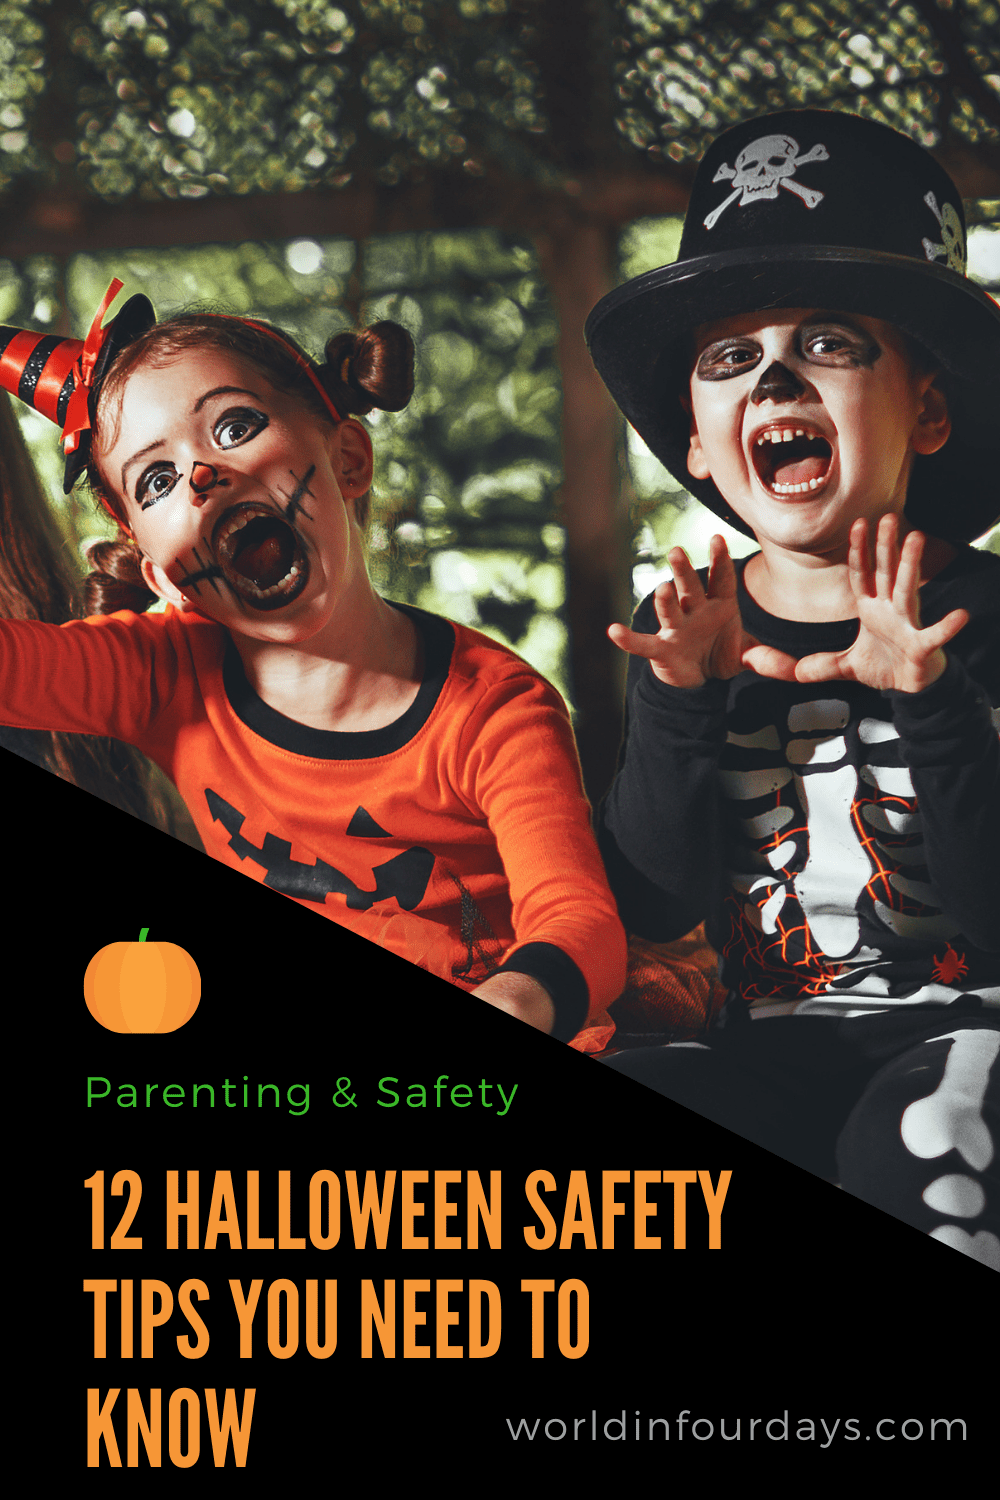 Is your family is ready to celebrate Halloween but you're also concerned about safety? Here are 12 Halloween Safety Tips You Need To Know to stay safe at home and on the streets this Halloween. #halloween #sefety #parenting